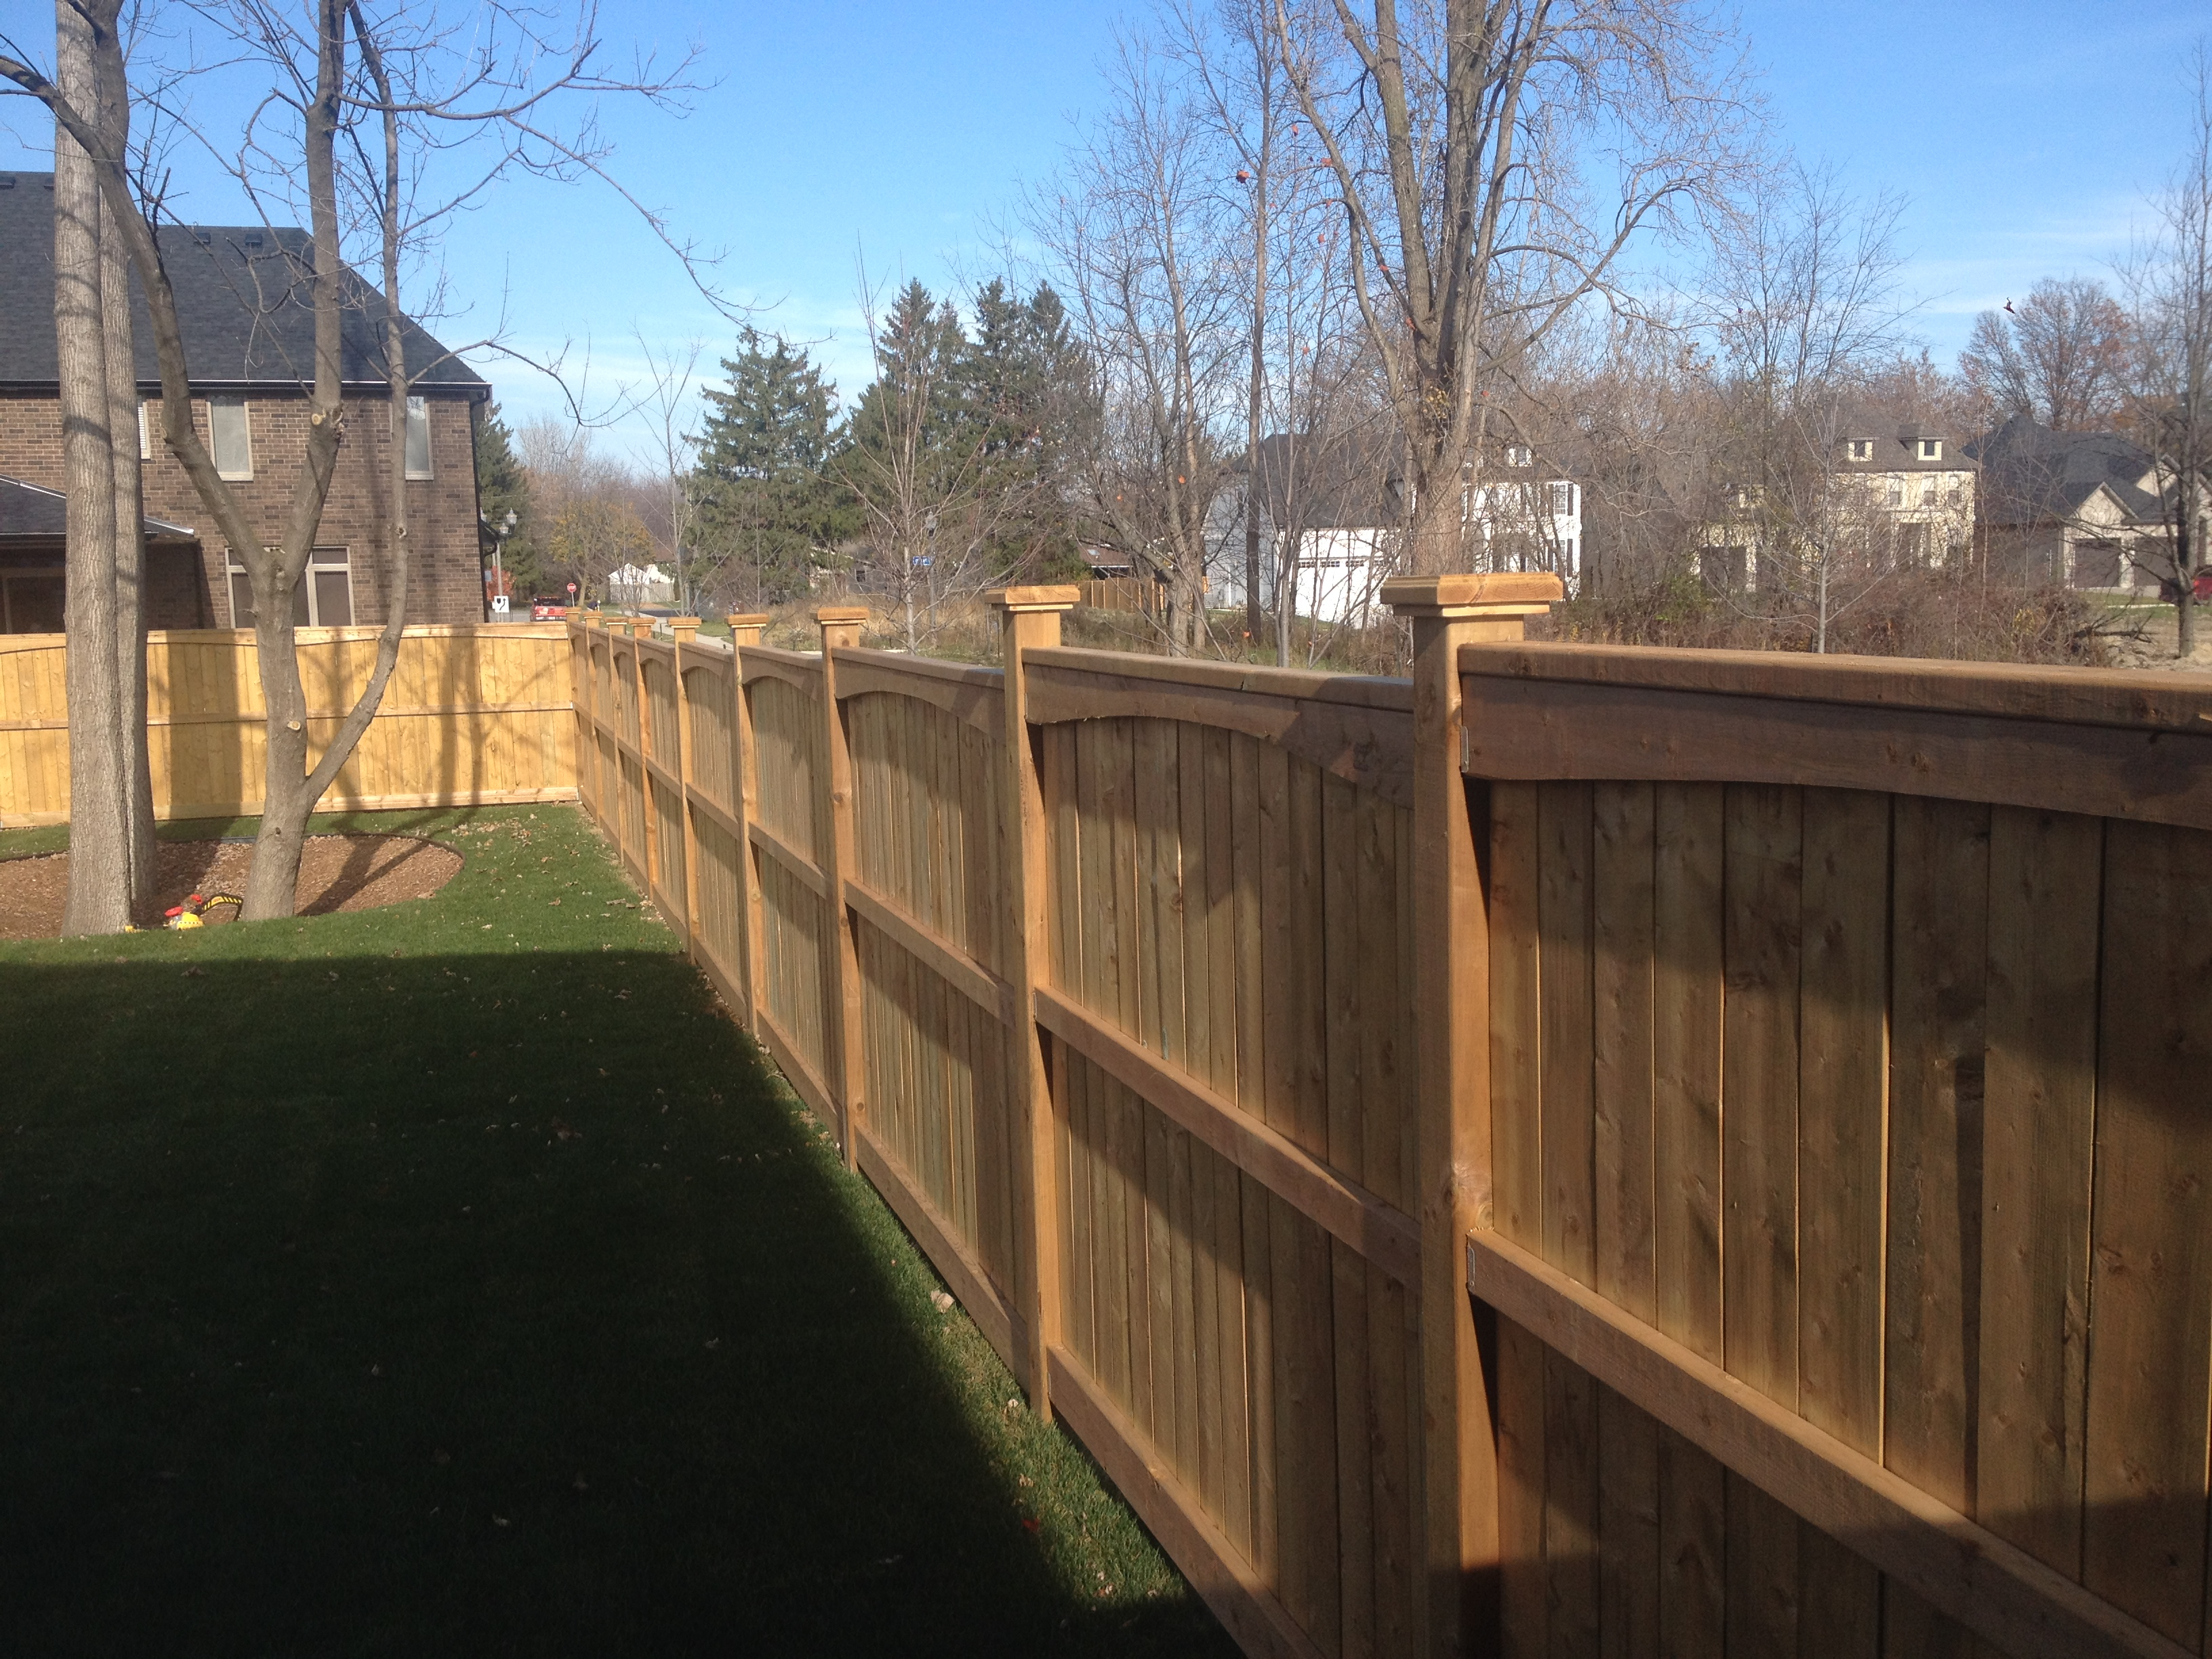 Stepped wood fence